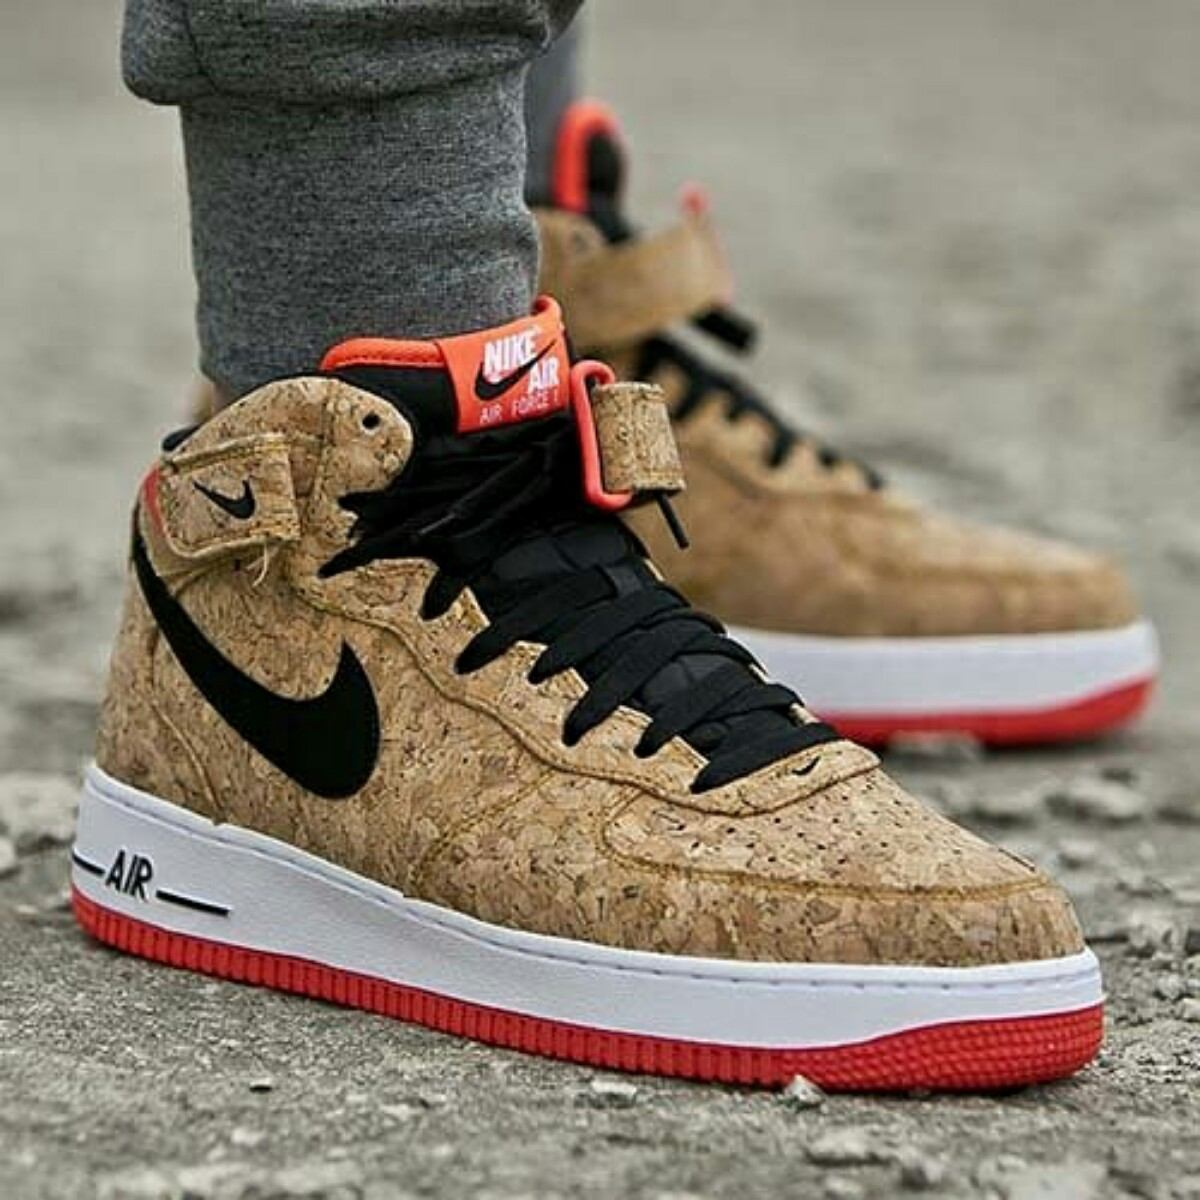 Buy nike air force cork > Up to 42% Discounts